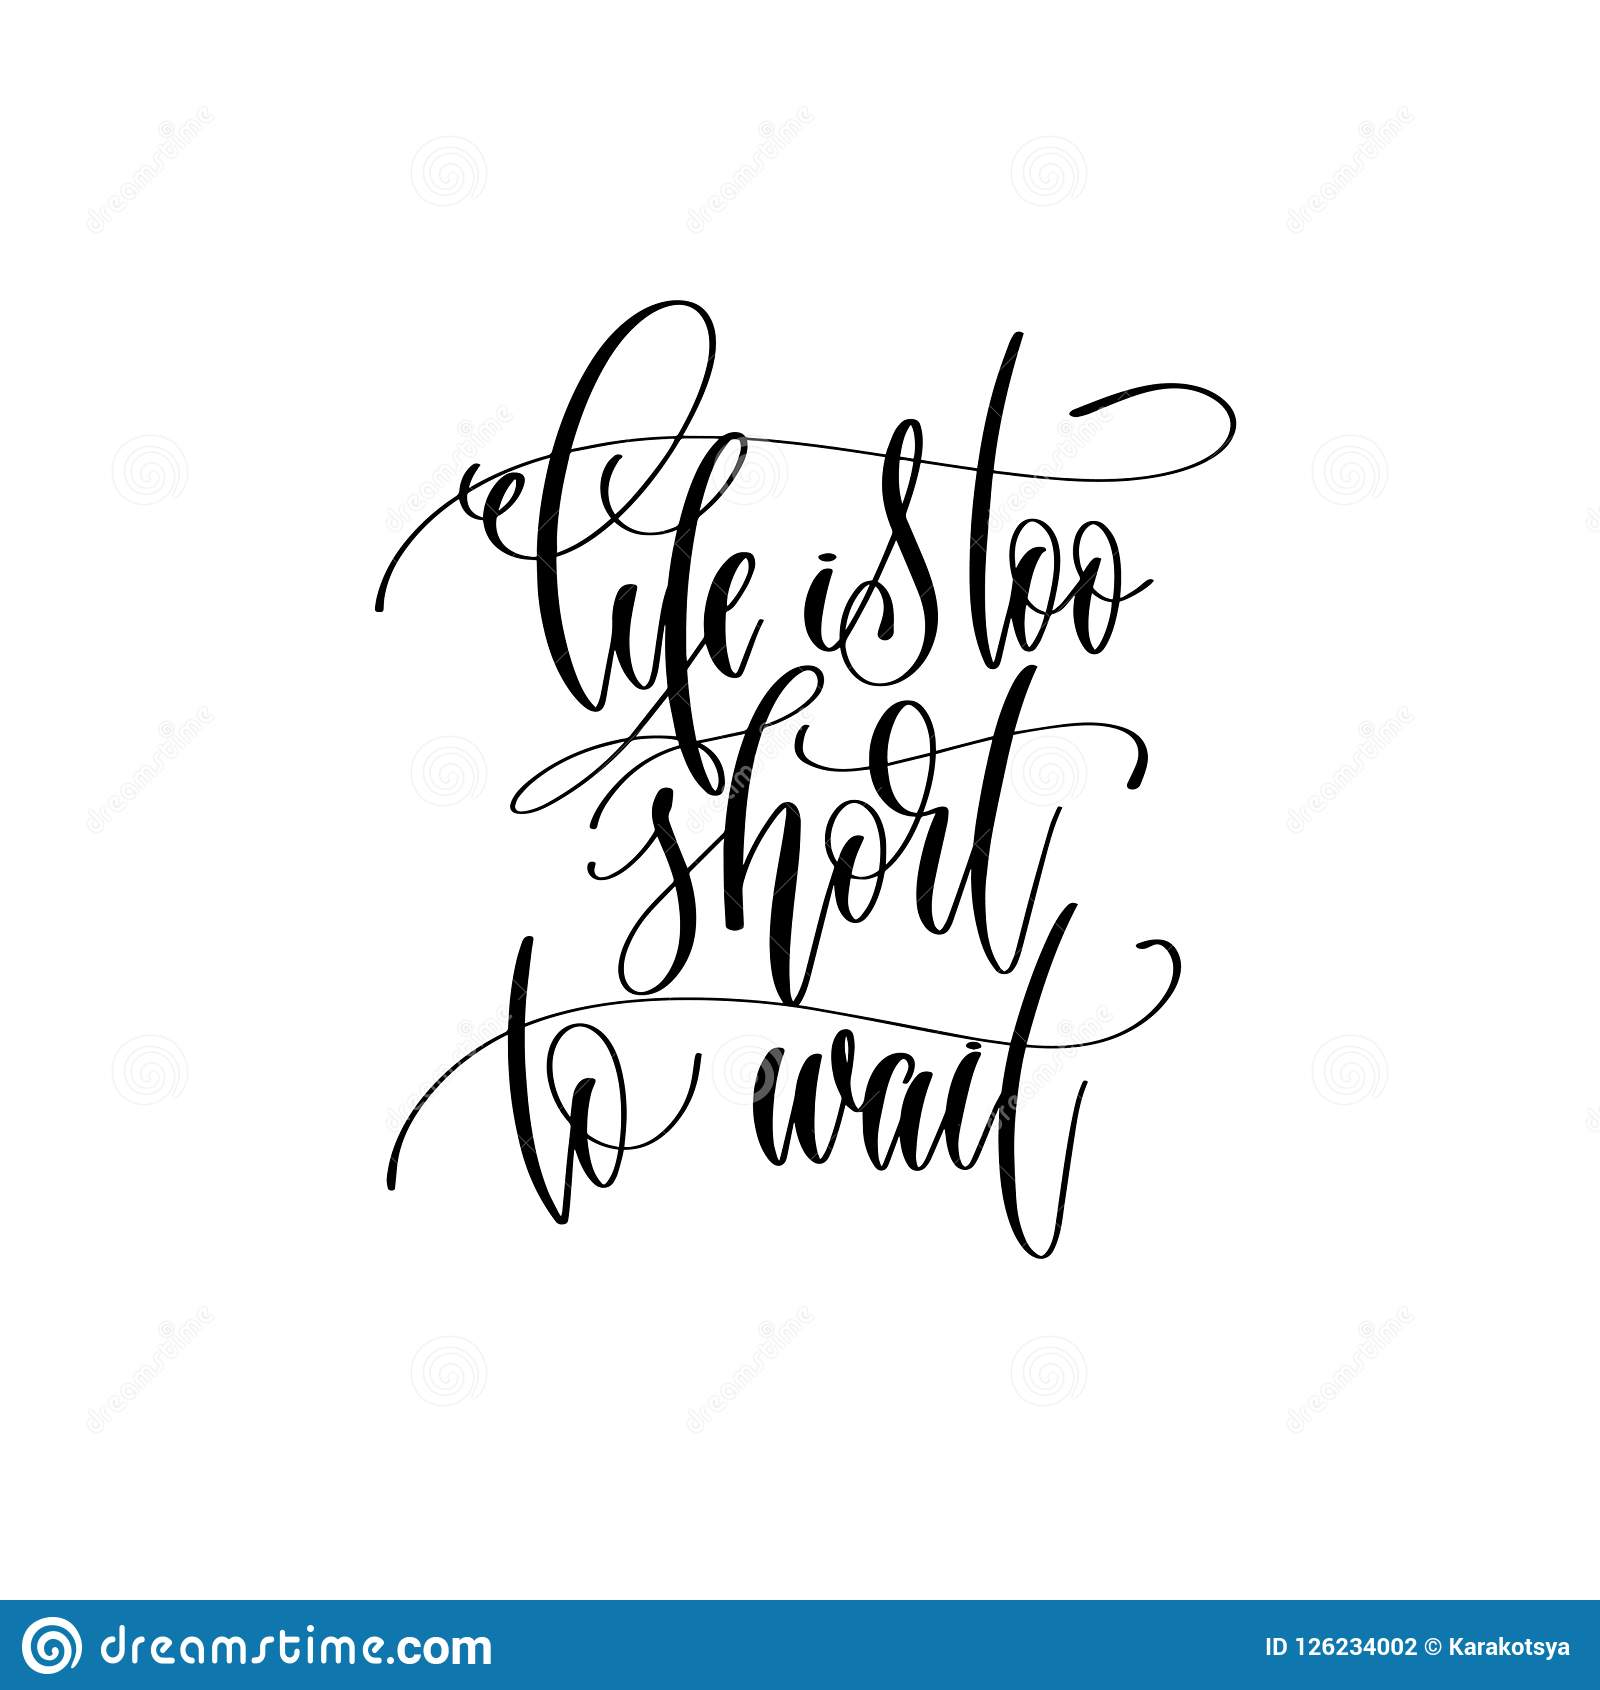 Image of: Hanquotes Life Is Too Short To Wait Hand Lettering Inscription Text Motivation And Inspiration Positive Quote Calligraphy Vector Illustration Dreamstimecom Life Is Too Short To Wait Hand Lettering Inscription Text Mot